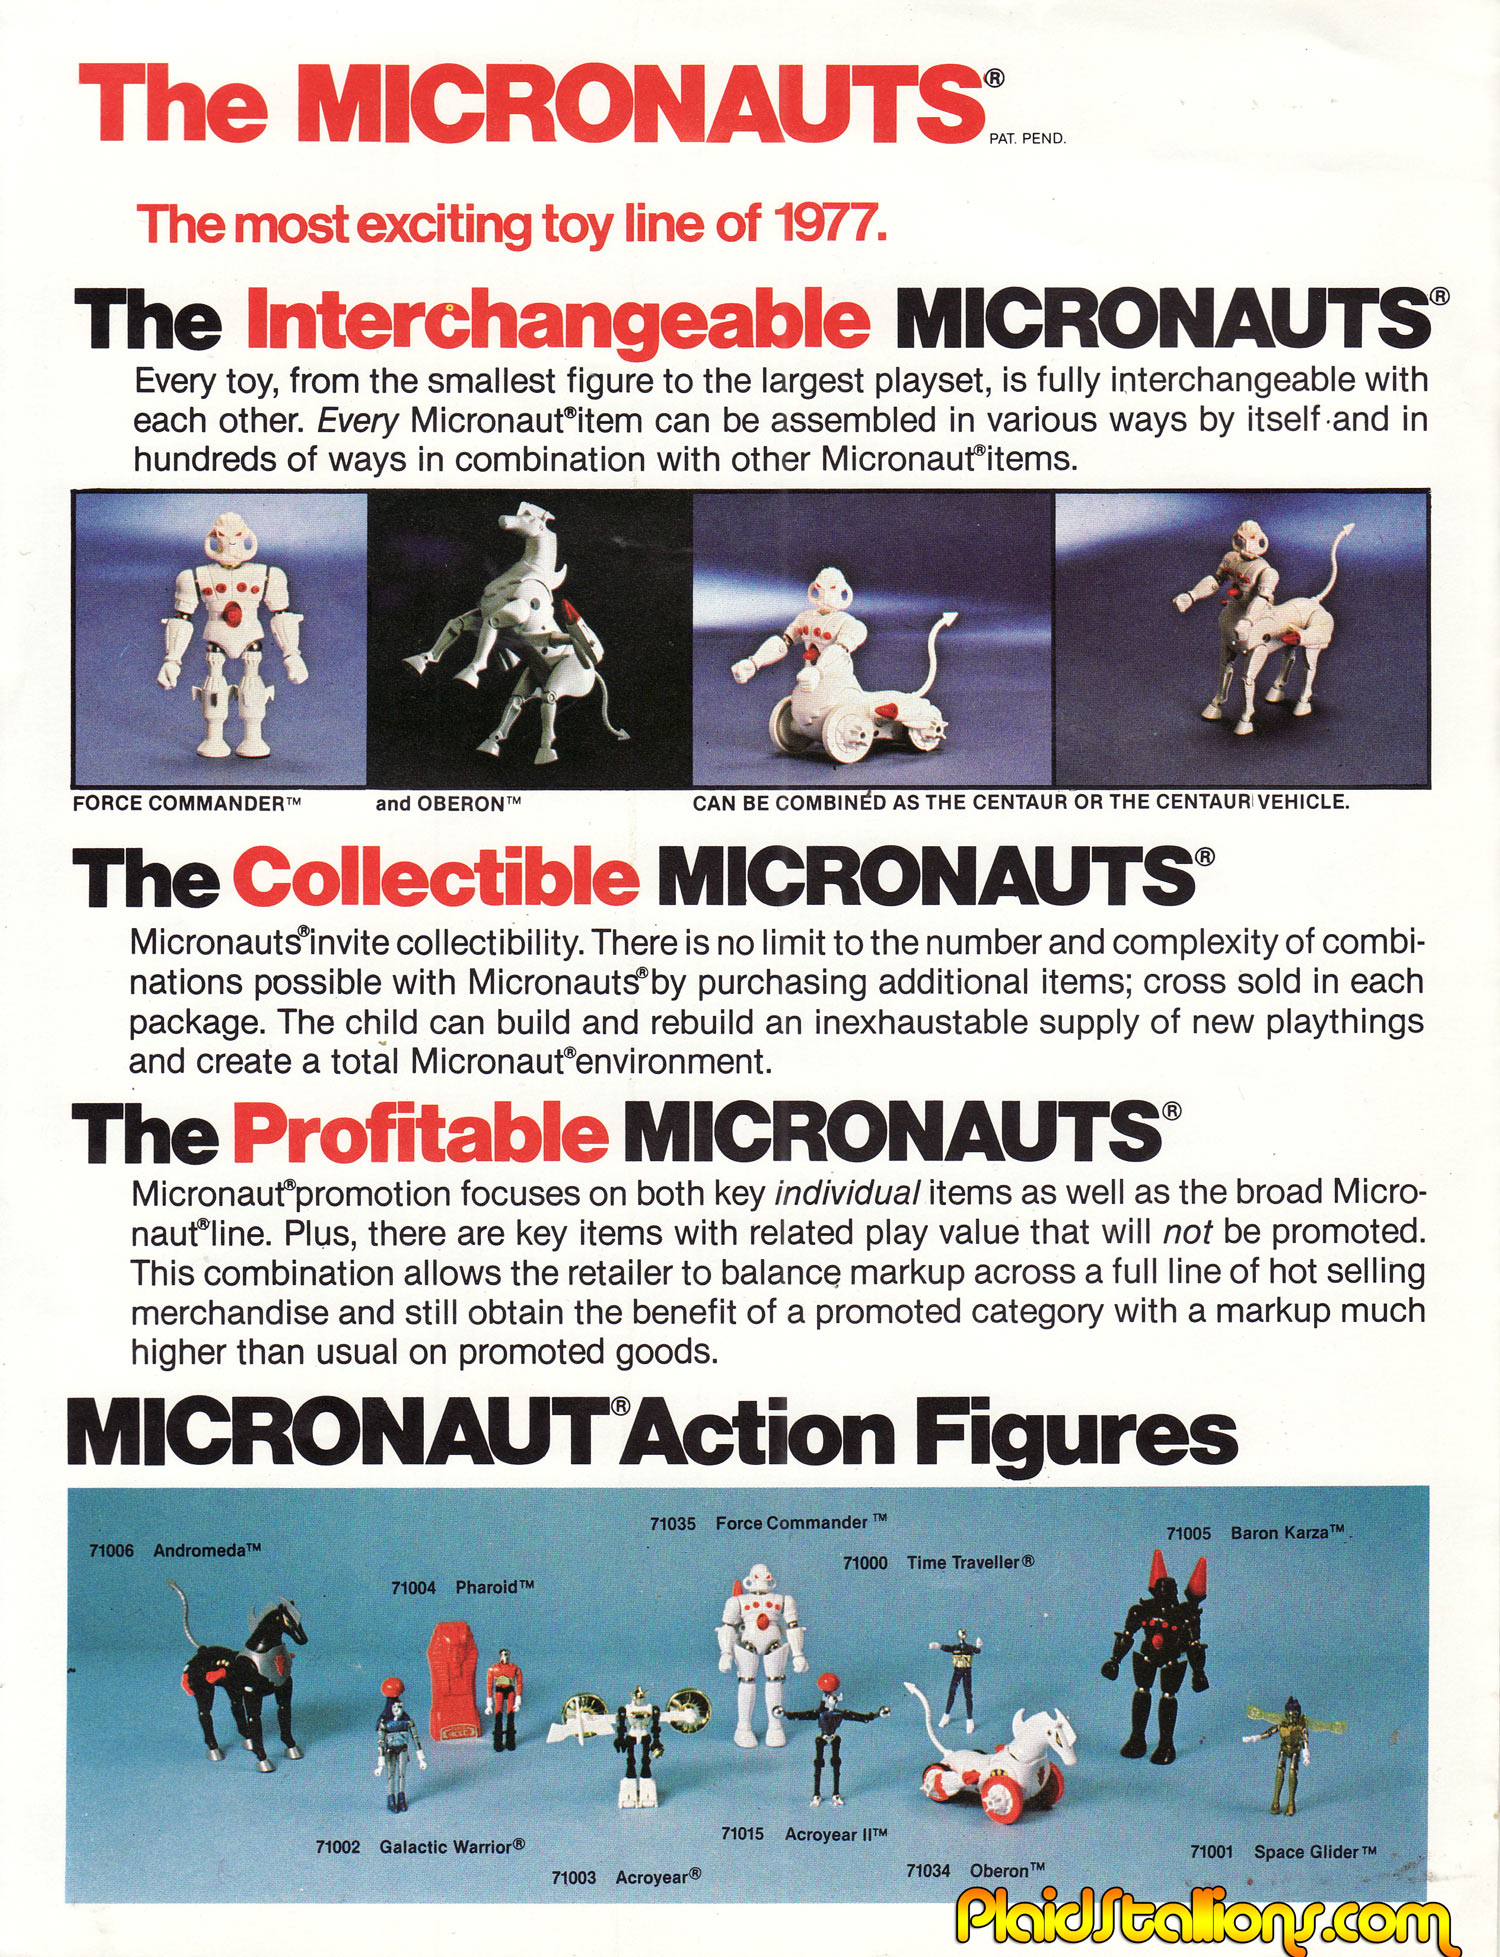 Mego Micronauts sales piece from 1978